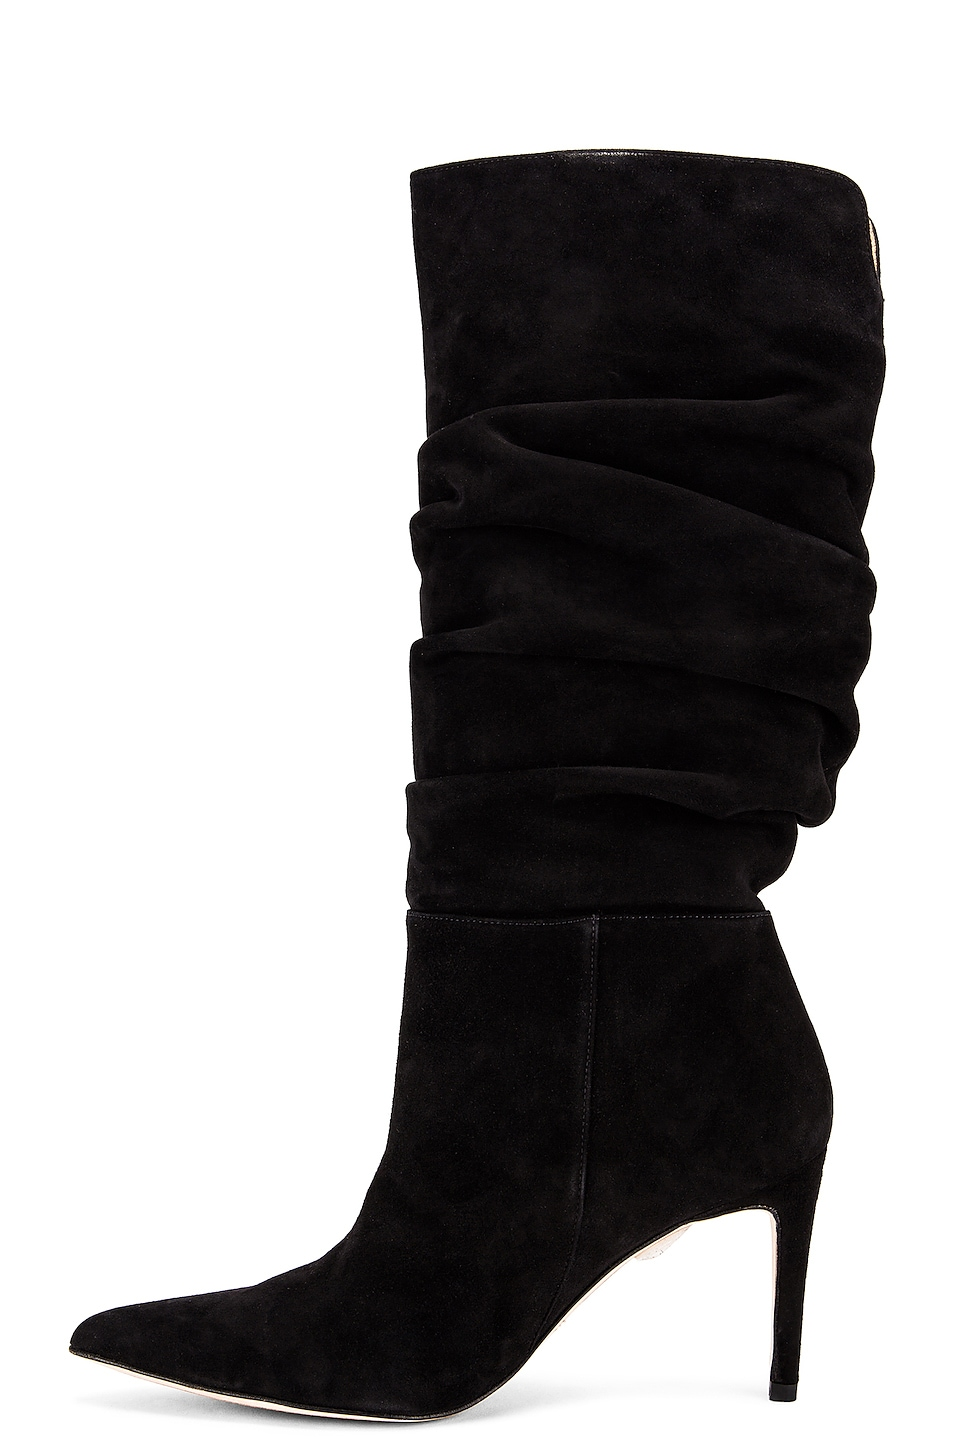 Image 5 of Alexandre Birman Lucy Suede Boots in Black